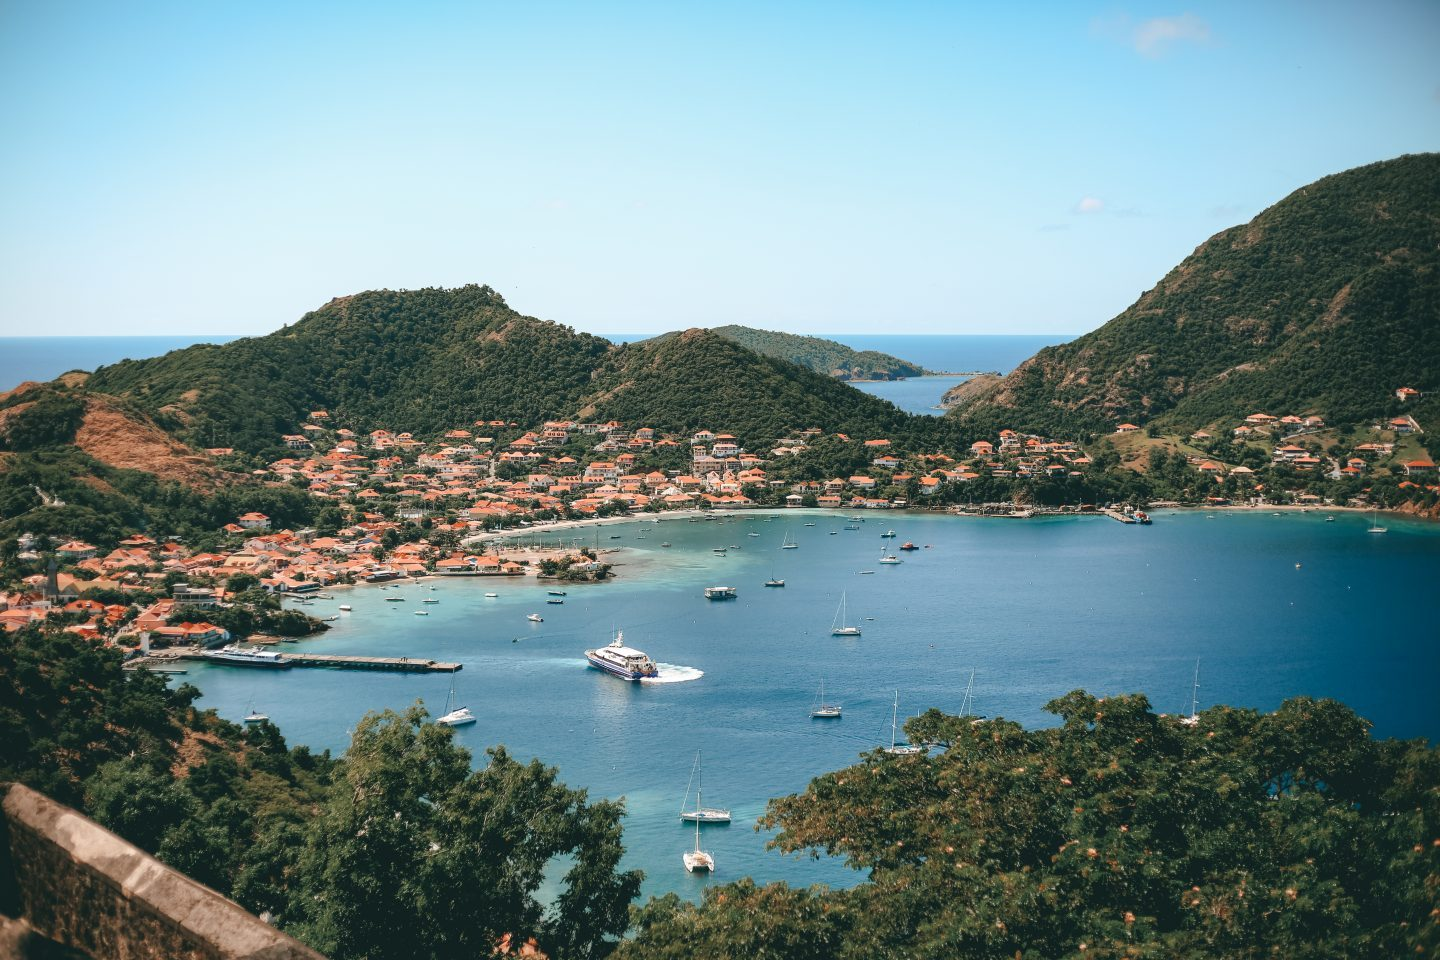 Les Saintes Guadeloupe - Blondie Baby blog voyages